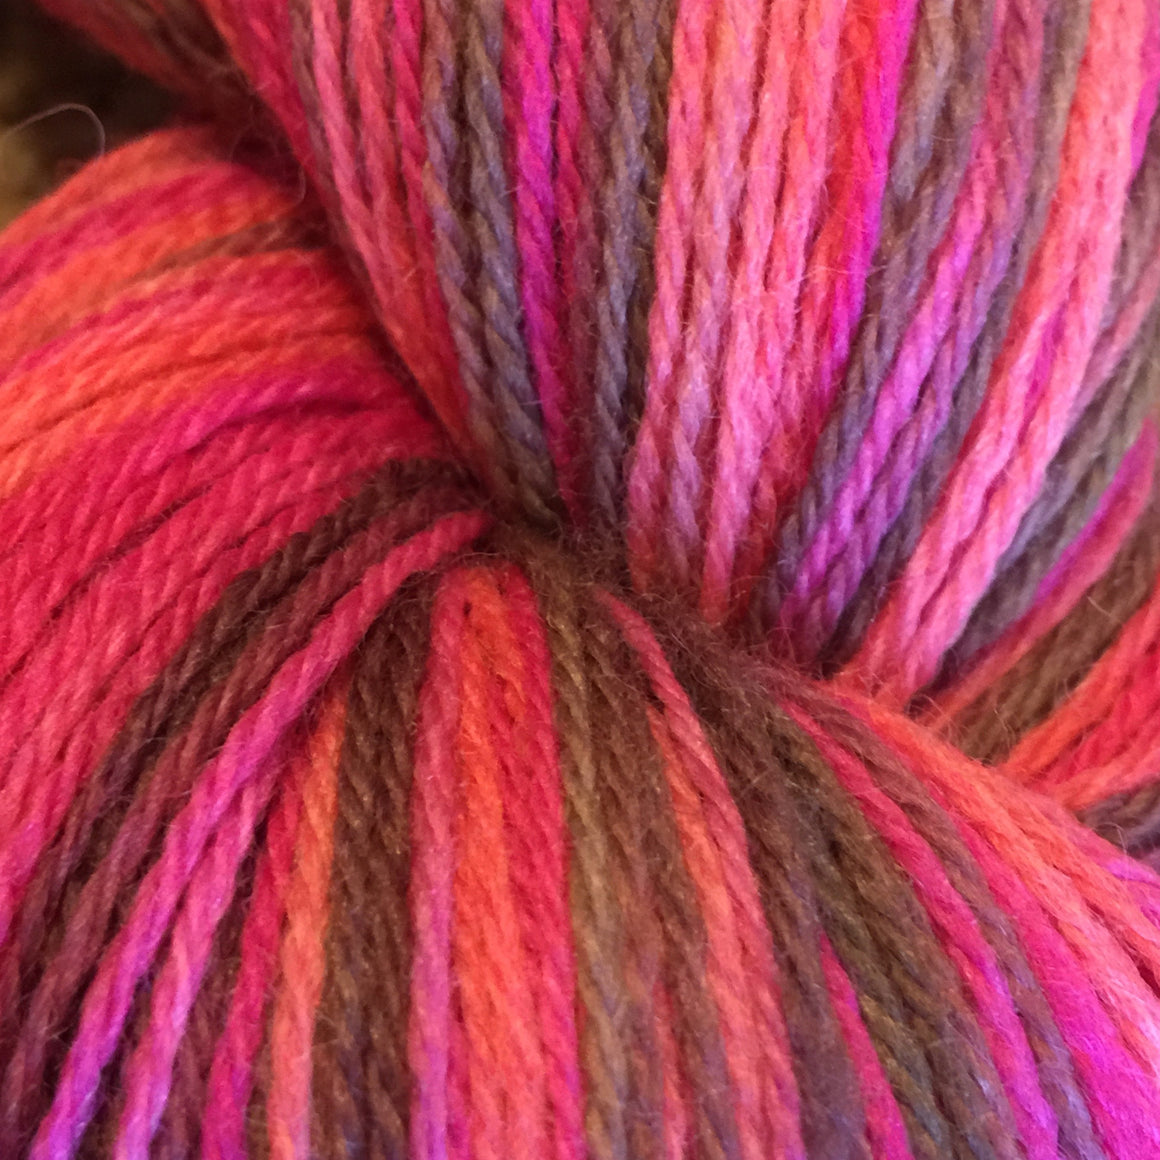 """Strawberry Bomb"" is a splash of pink and strawberry tones in a fingering weight super wash merino yarn"